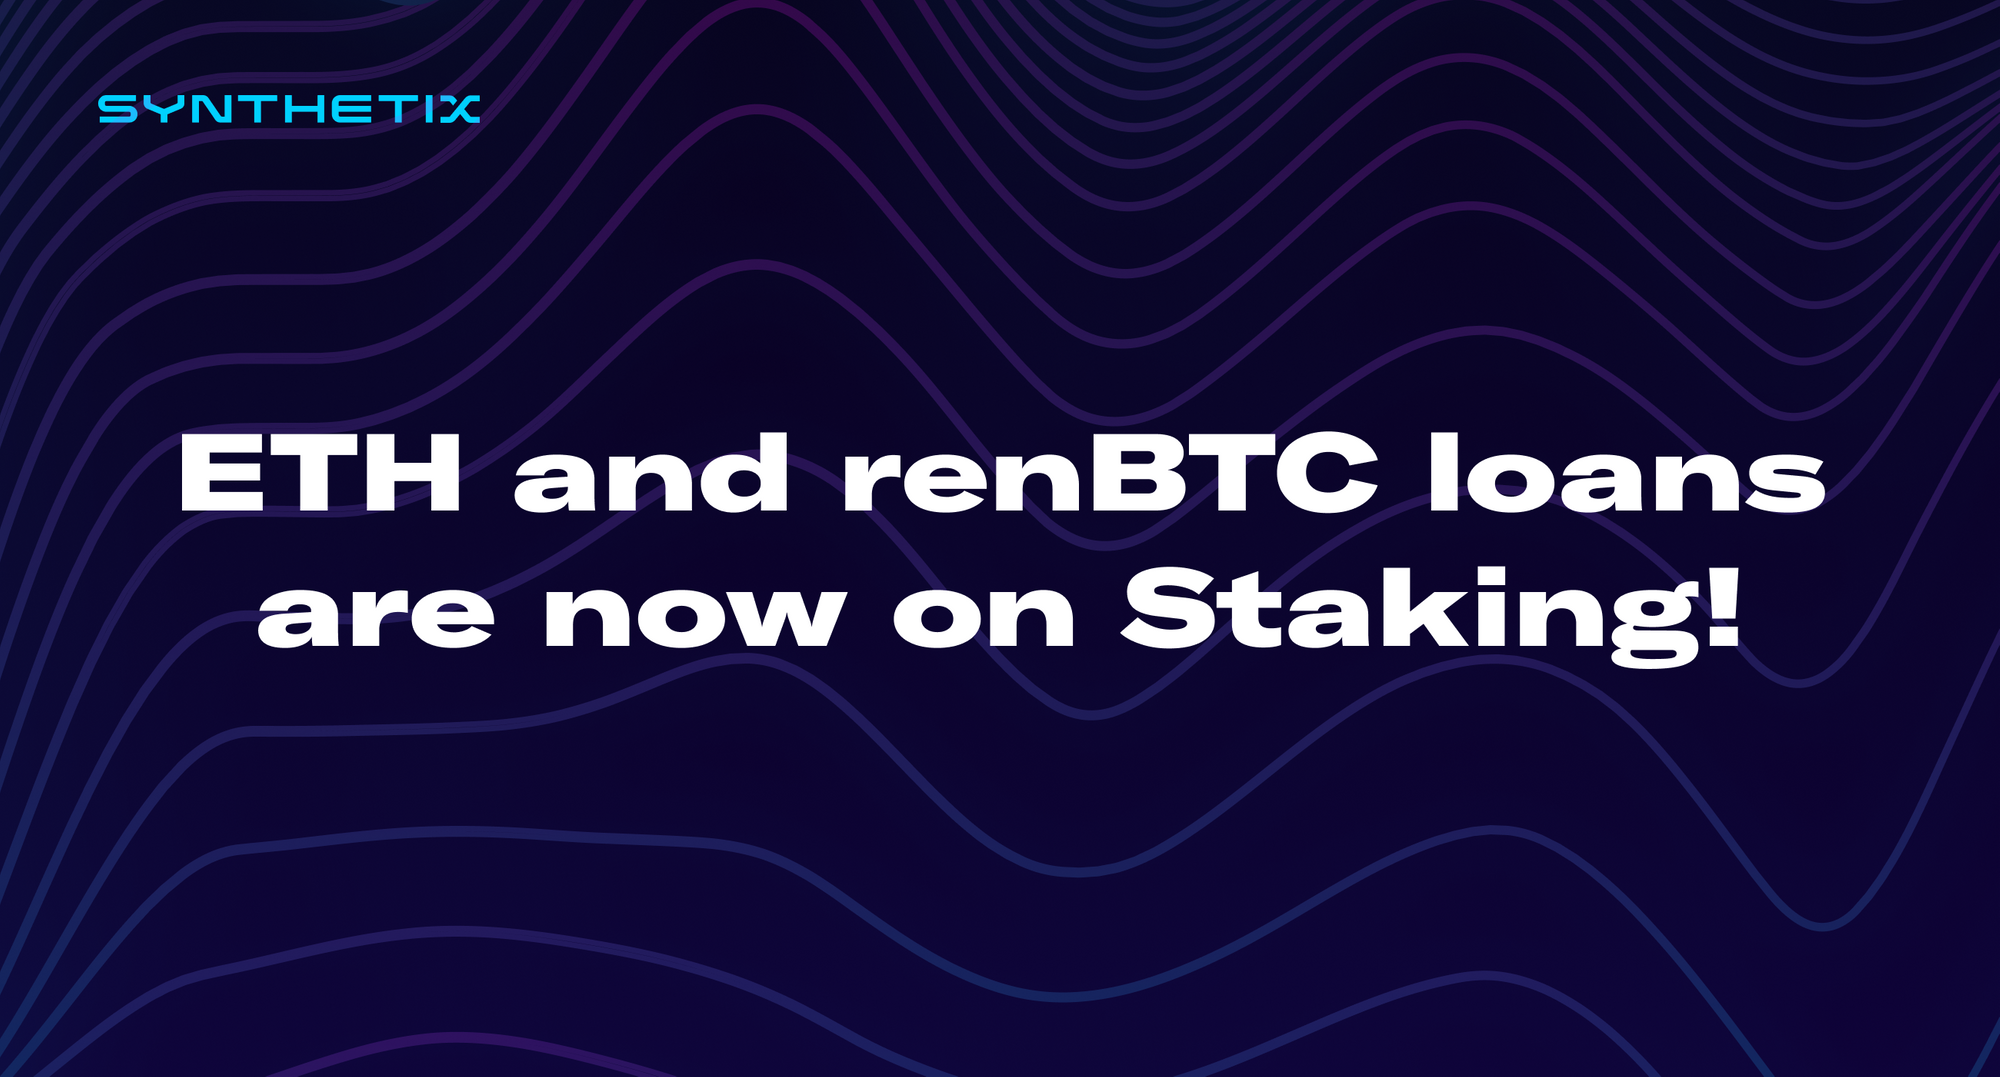 ETH and renBTC loans are now on Staking!